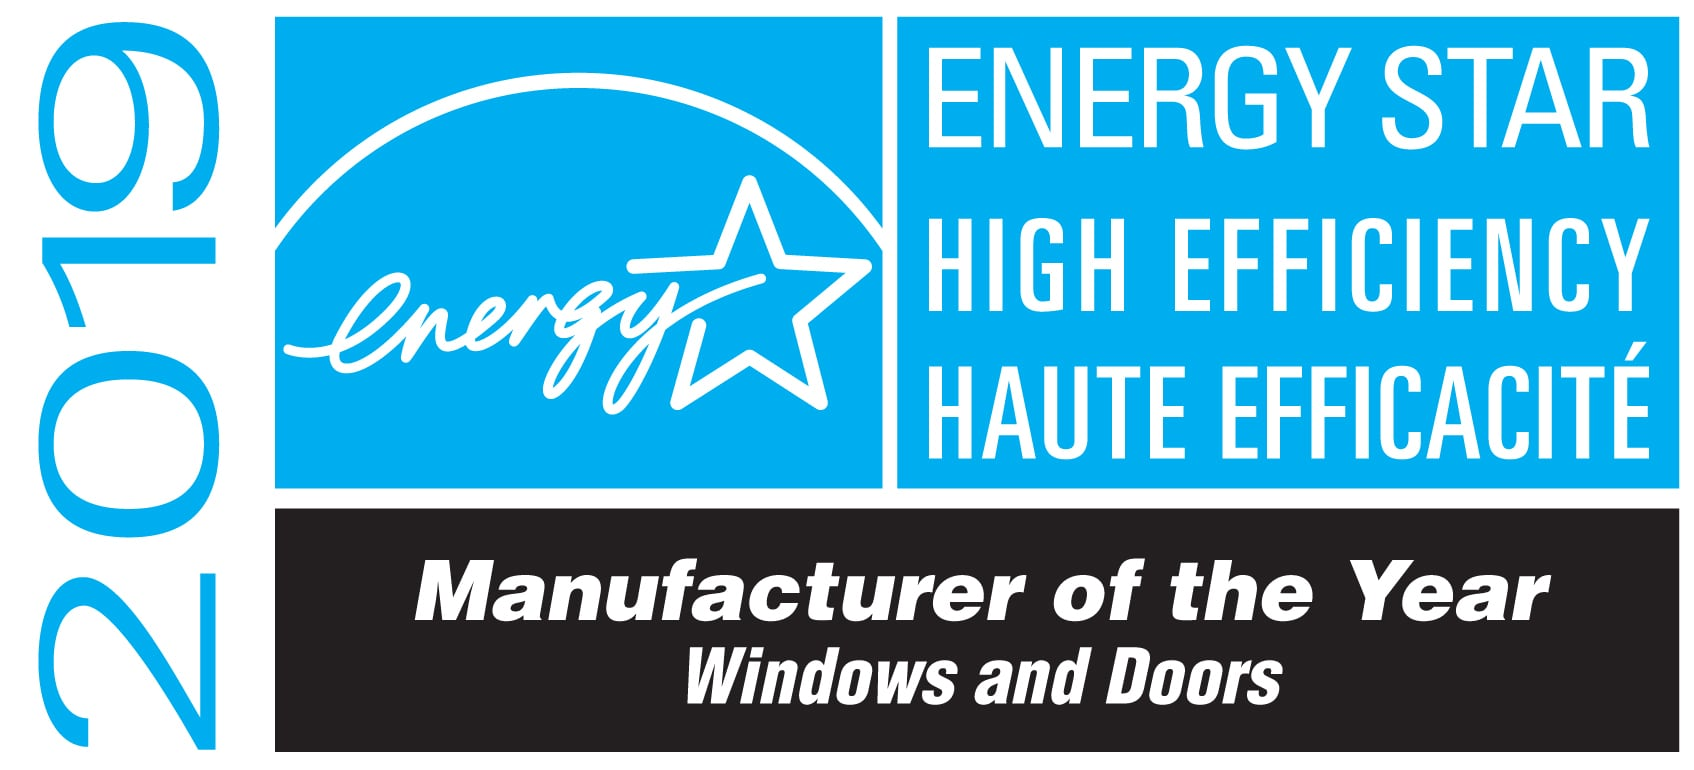 2019 Energy Star Manufacturer of the year